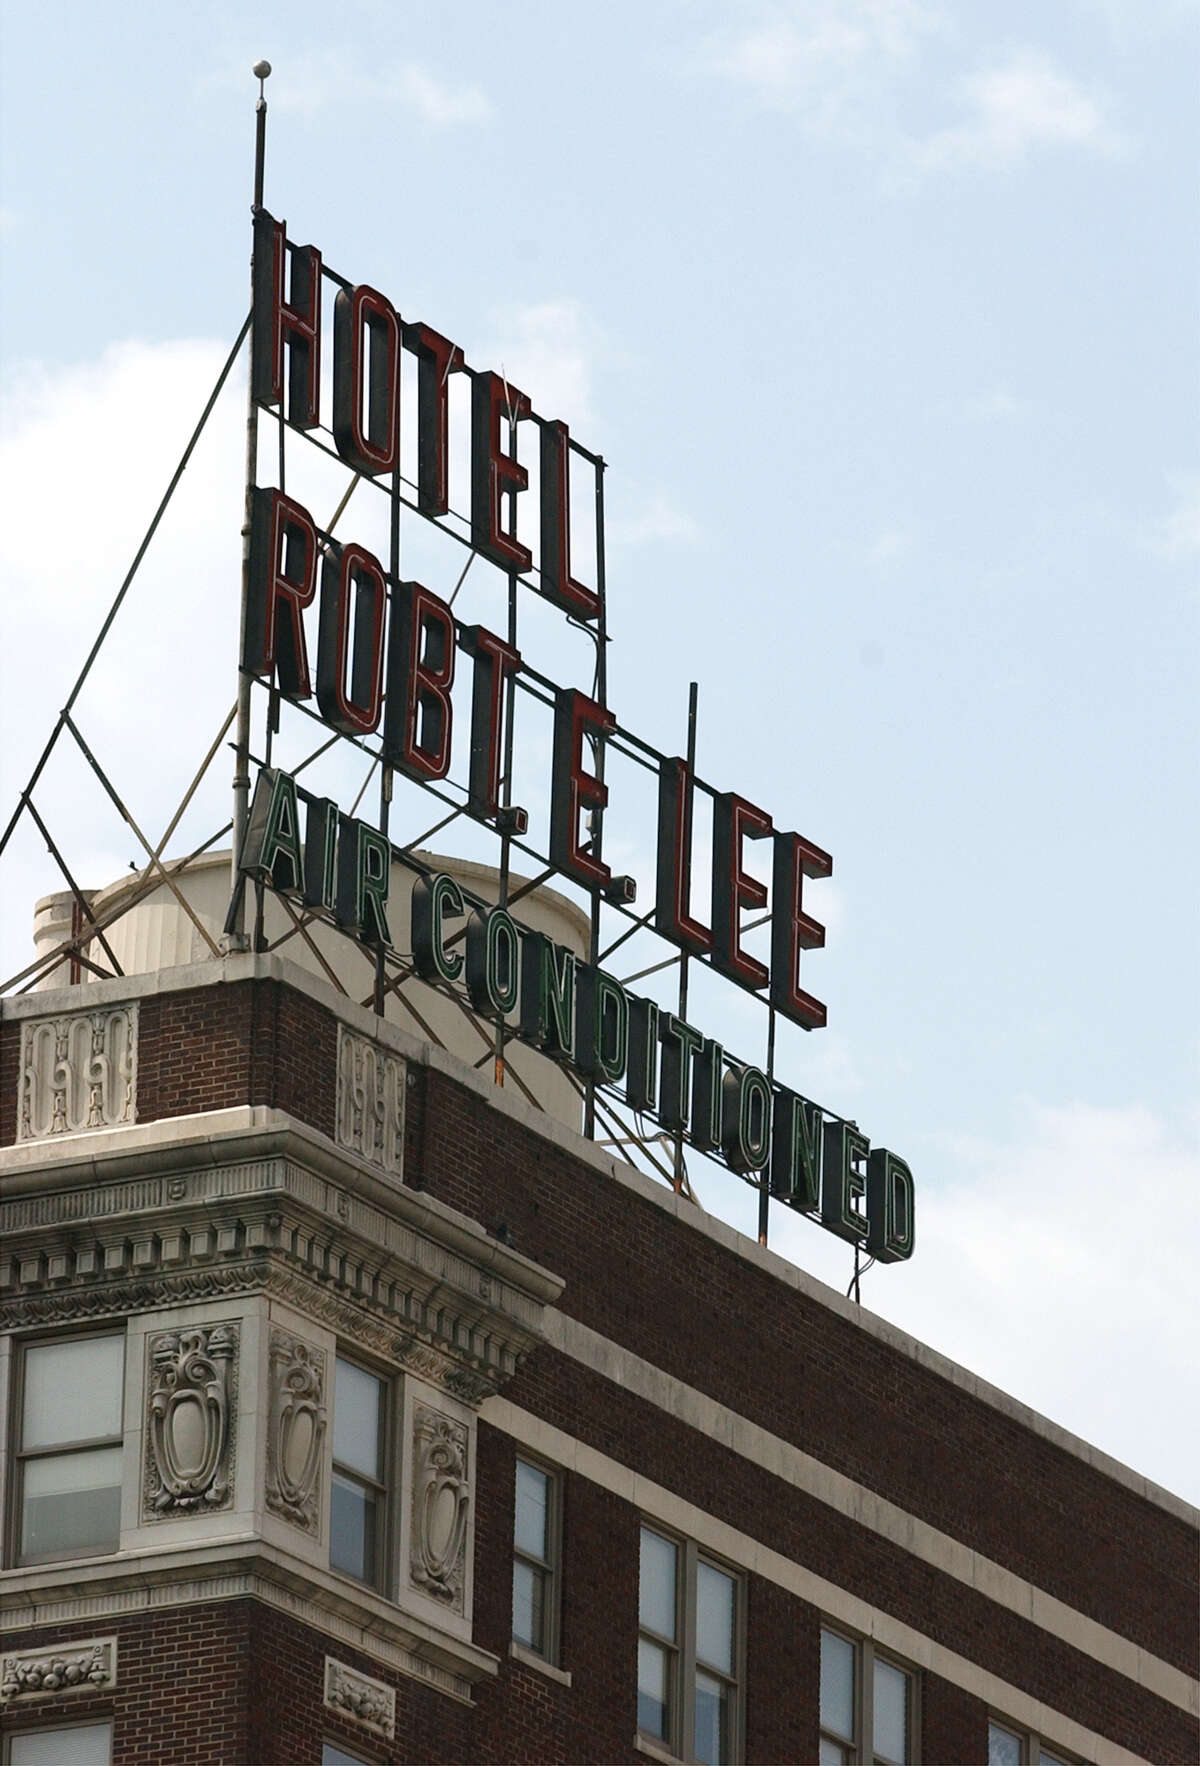 A group of New England investors is applying for state incentives to redevelop the historic Robert E. Lee apartment building downtown and add retail to the ground floor.